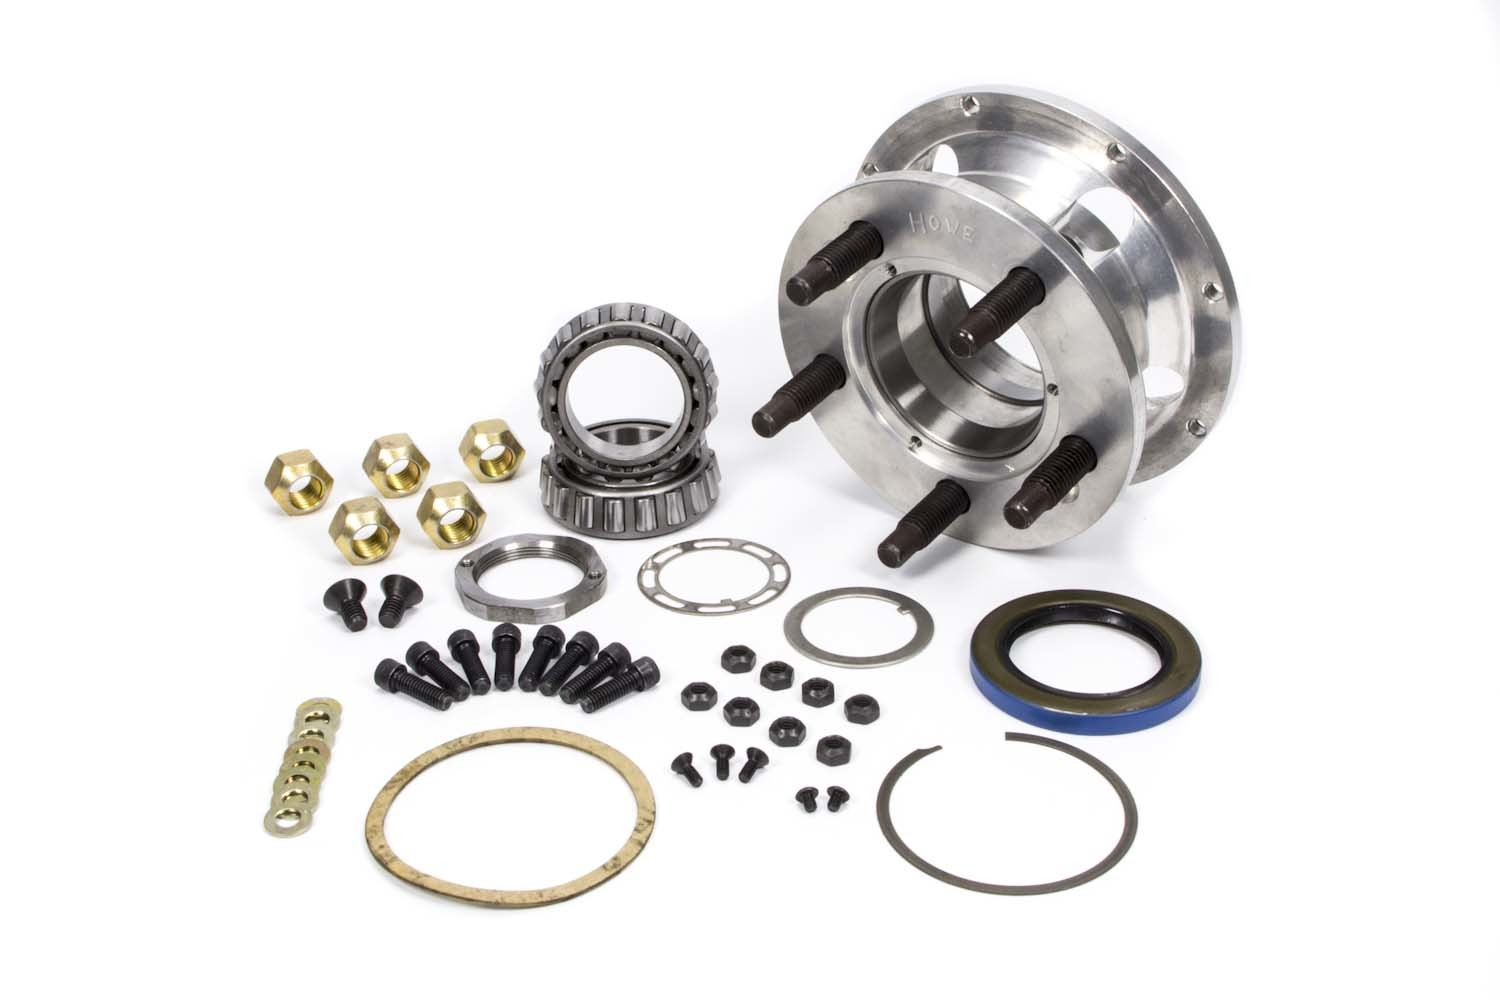 Howe 205100 Wheel Hub, Front, Small Five, 5 x 5.00 in Wheel, 5/8-11 in Stud, 8 x 7 in Rotor, Aluminum, Natural, Kit